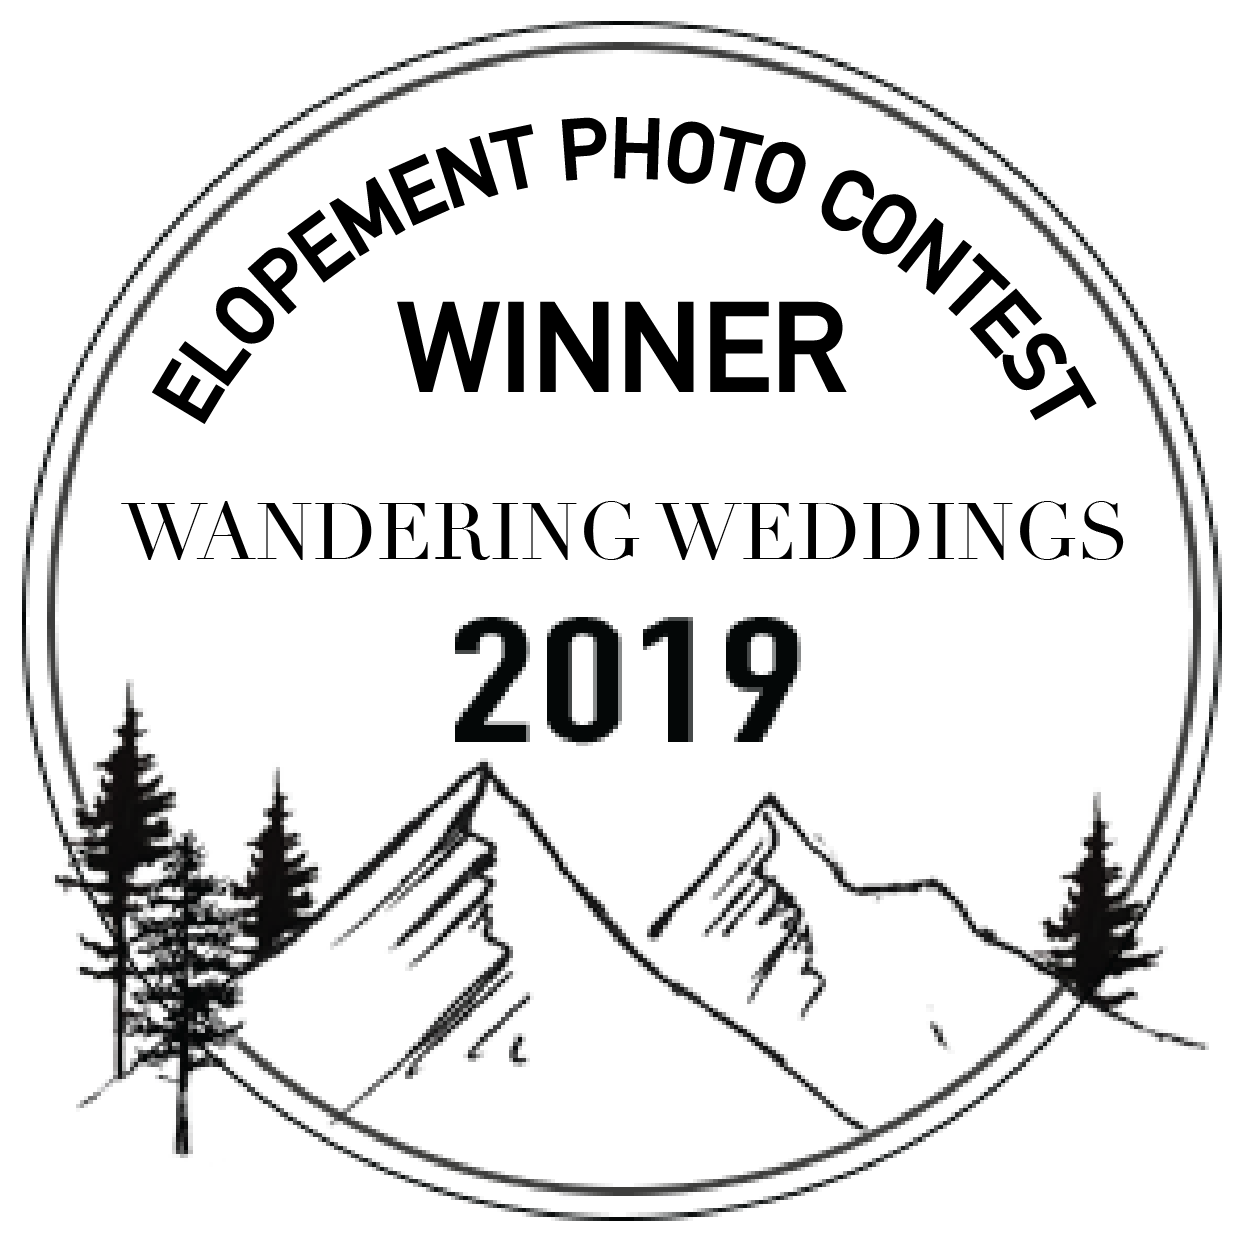 Winner of the 2019 Wandering Weddings Elopement Photo Contest